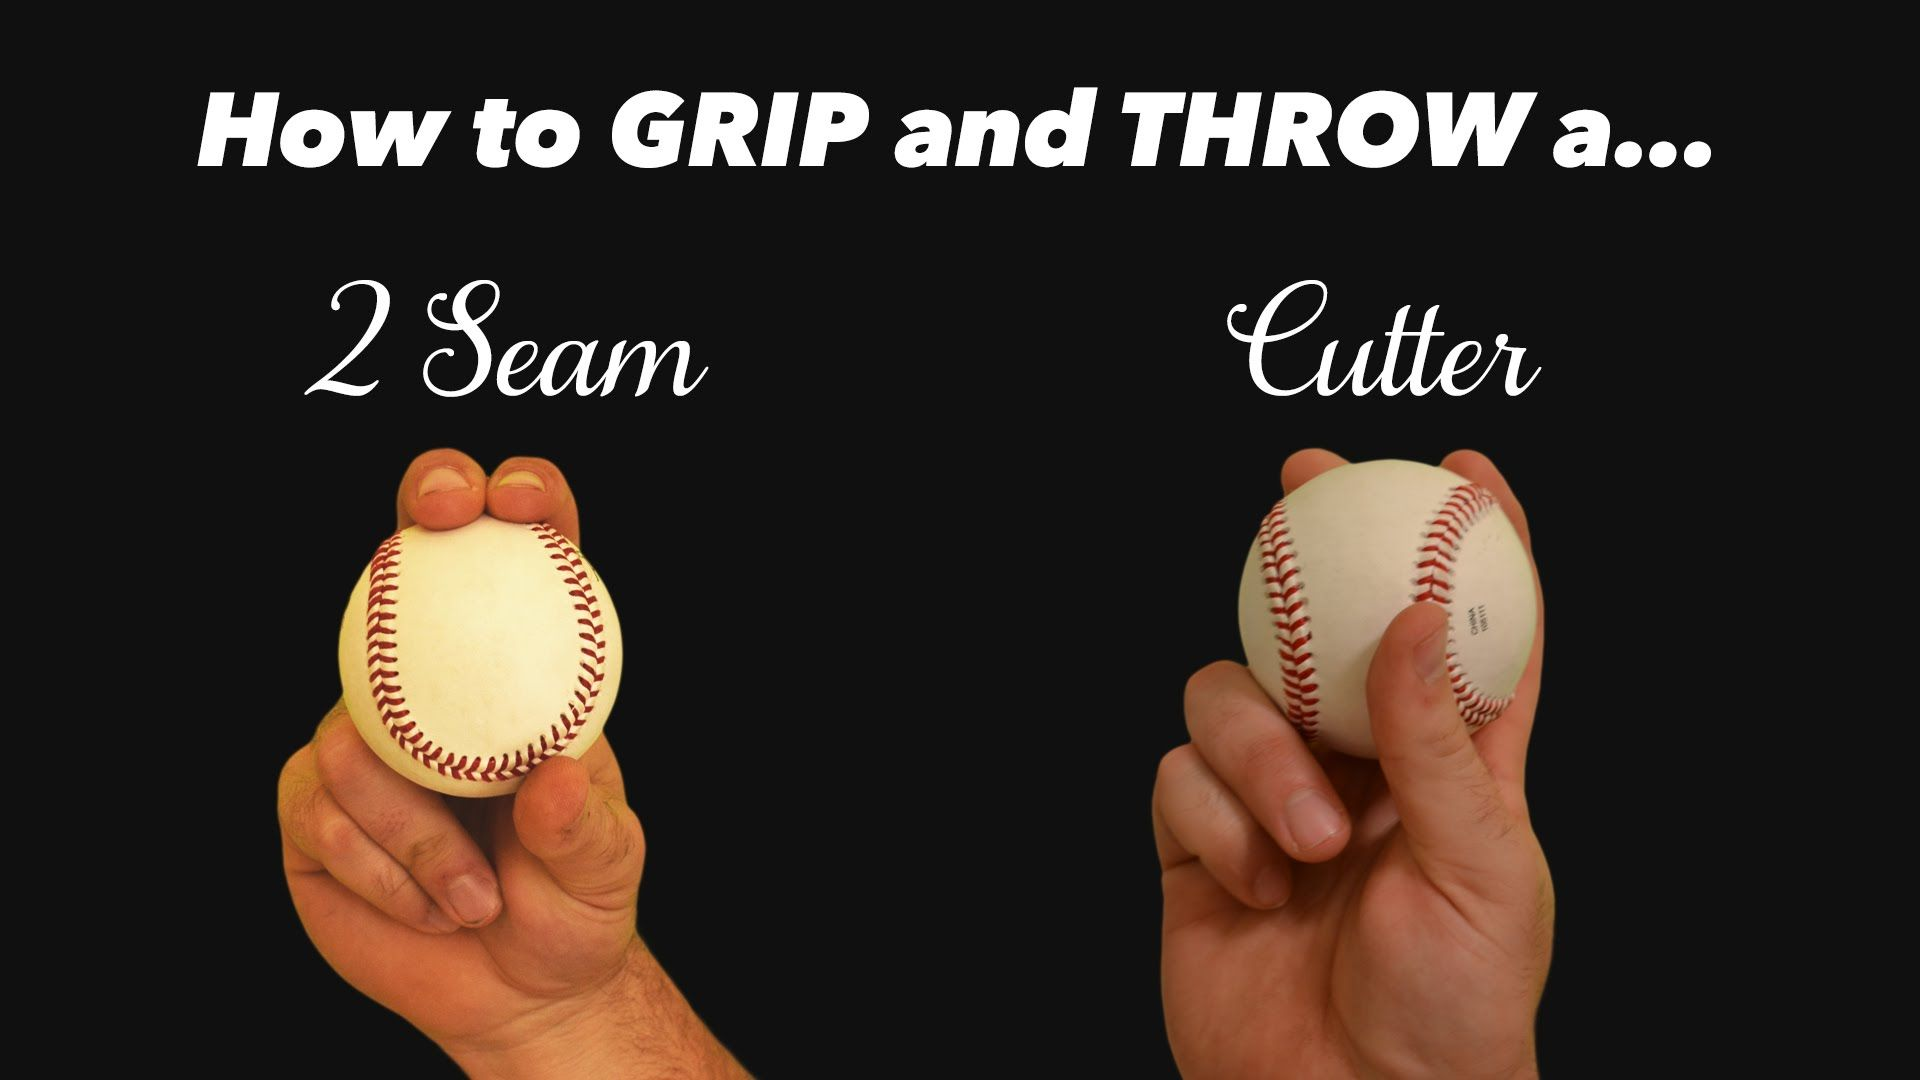 Baseball Grips For Pitching How To Throw A Cutter And 2 Seam Youtube Baseball Drills Baseball Scores Baseball Pitching